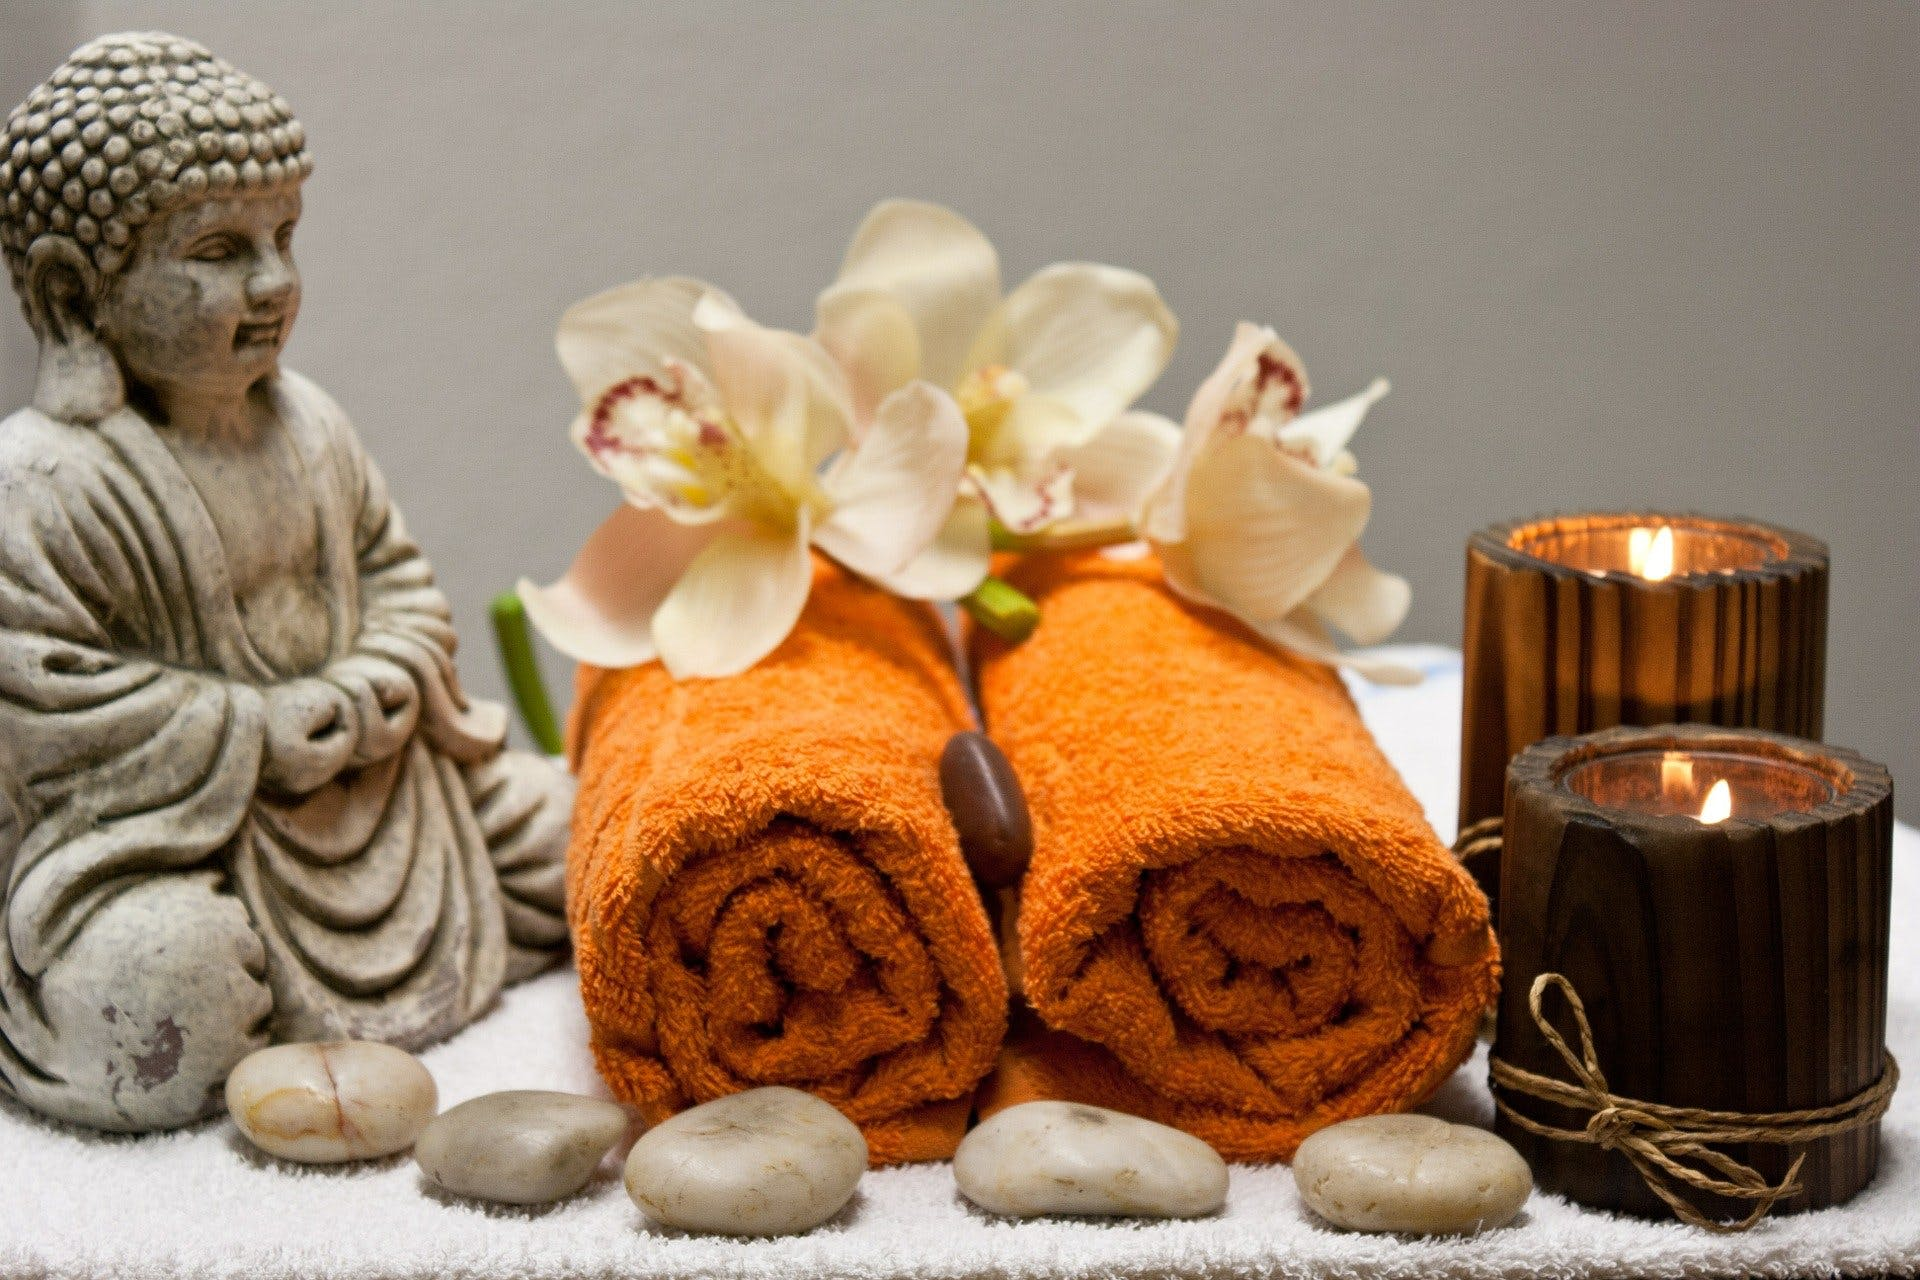 Spa day treatment with towels and candles